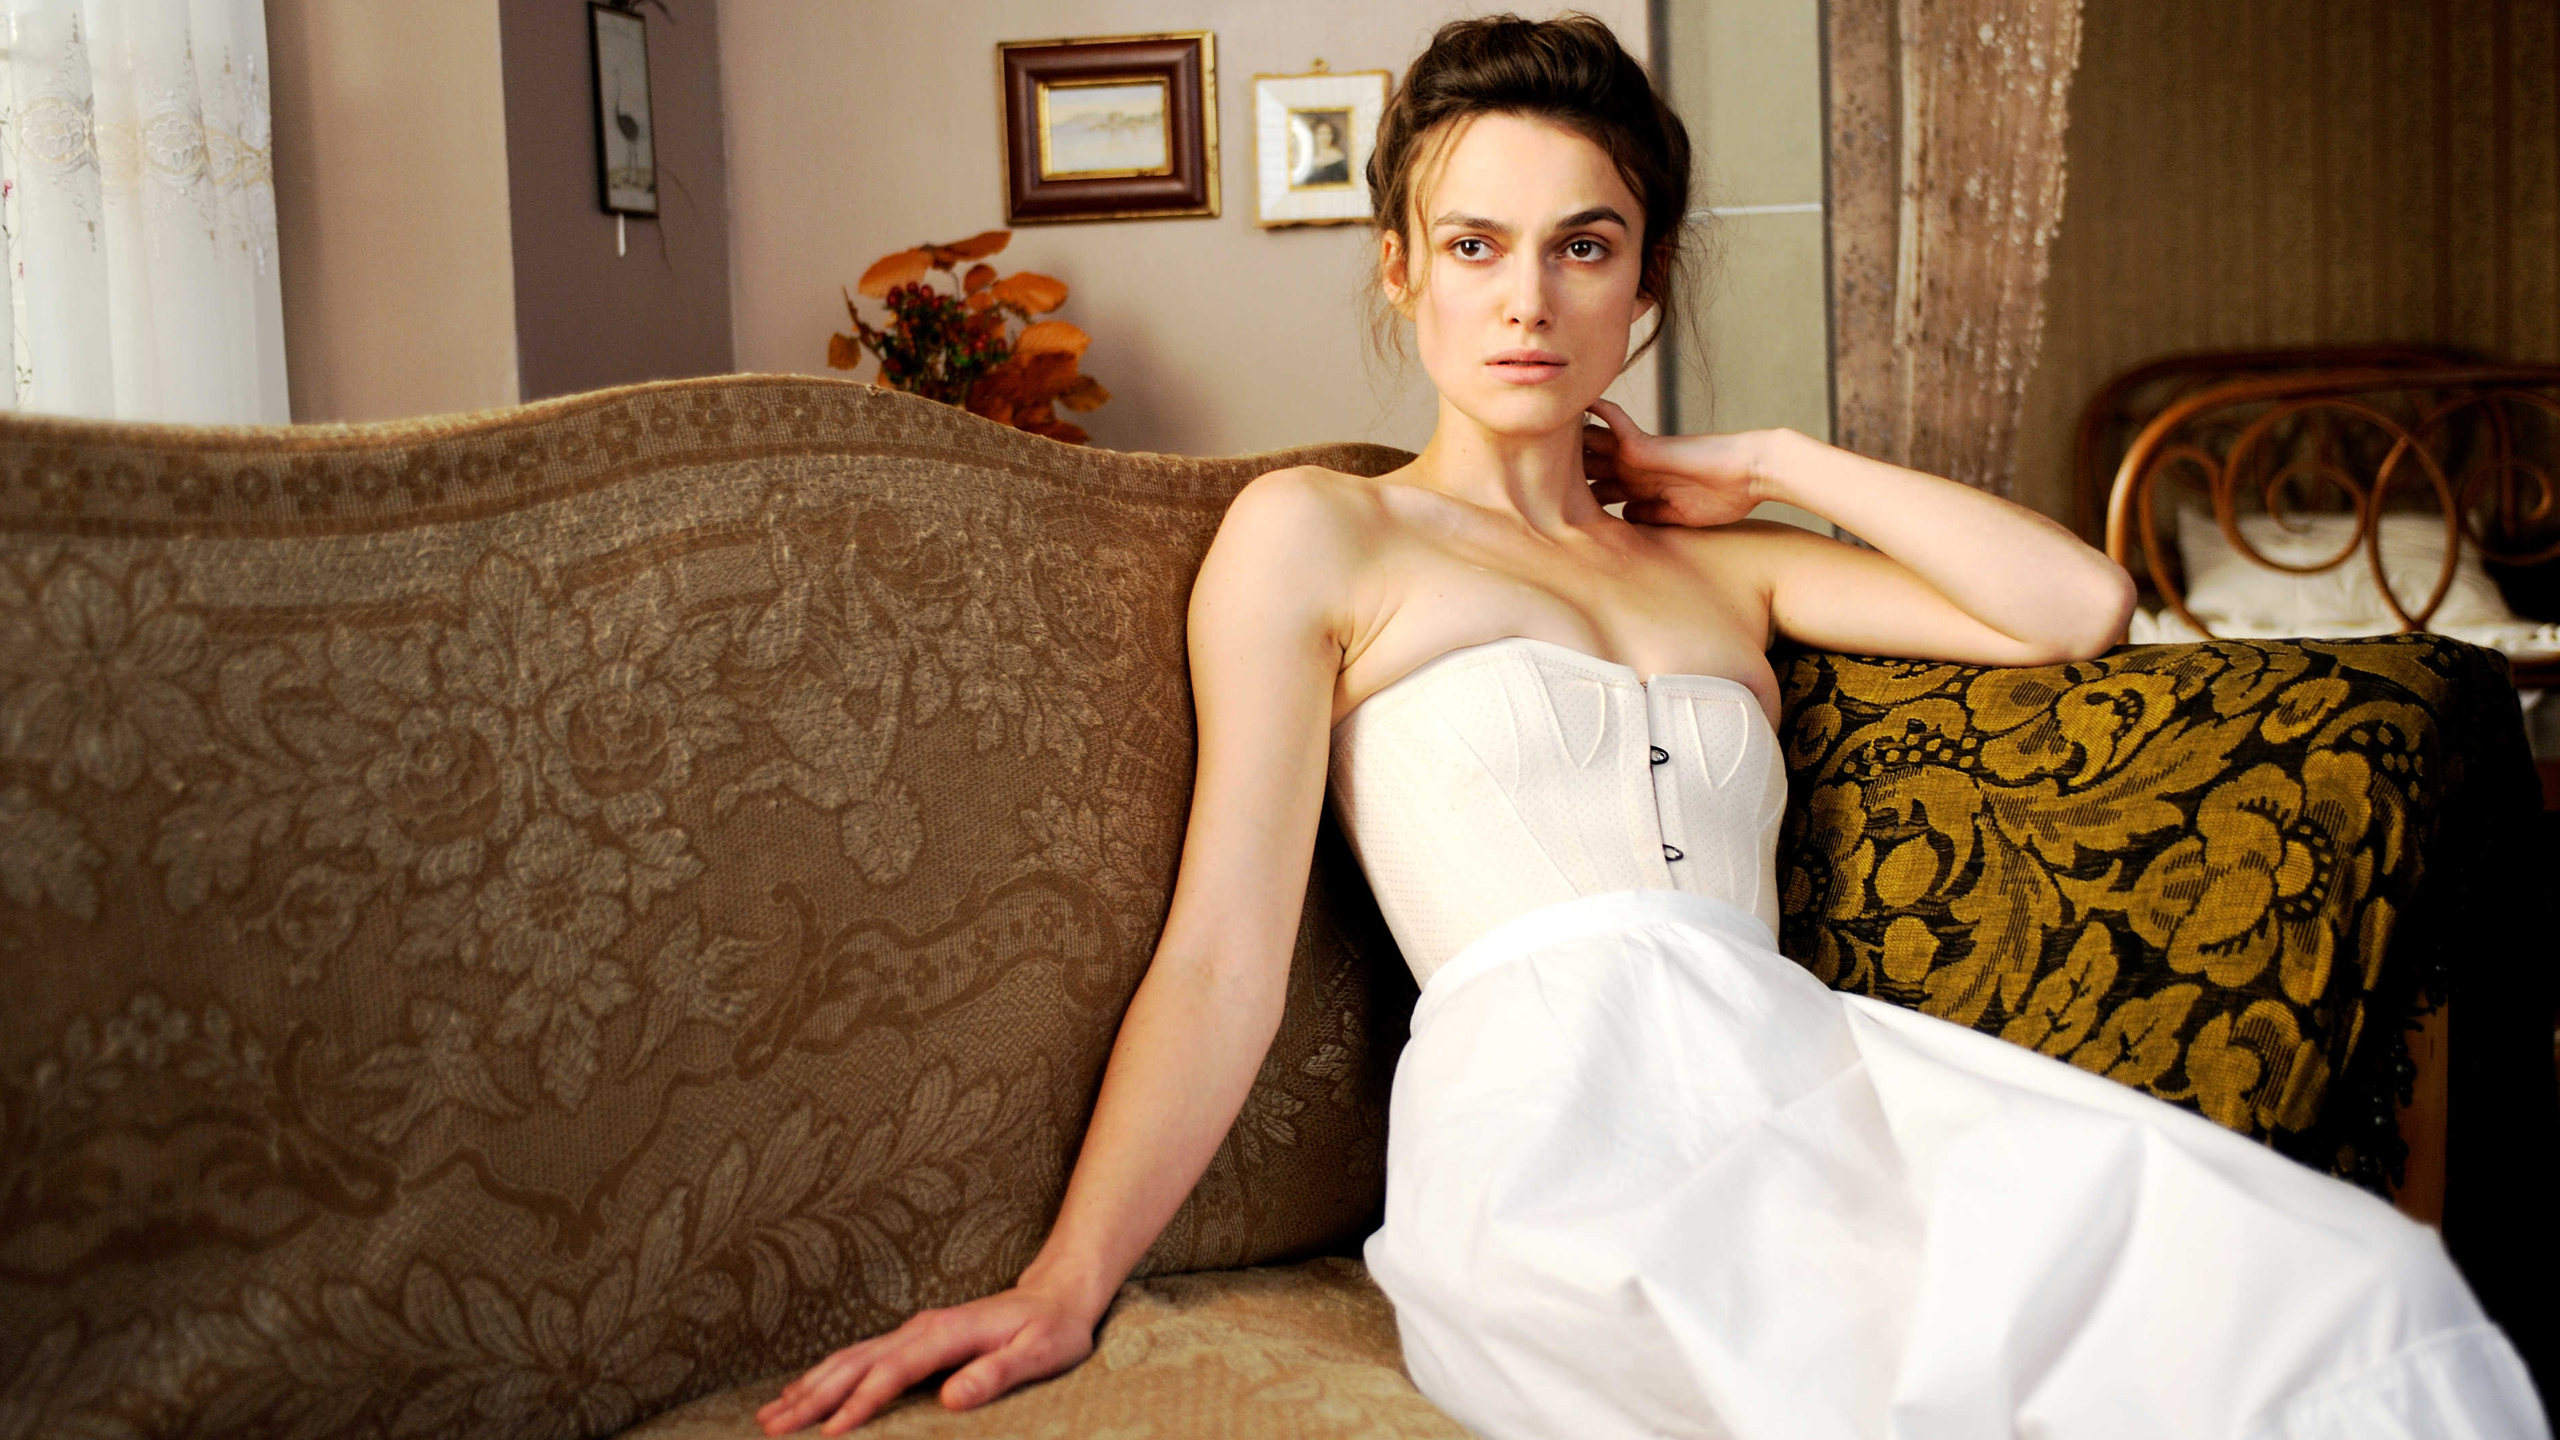 Keira Knightley Dangerous Method wallpaper